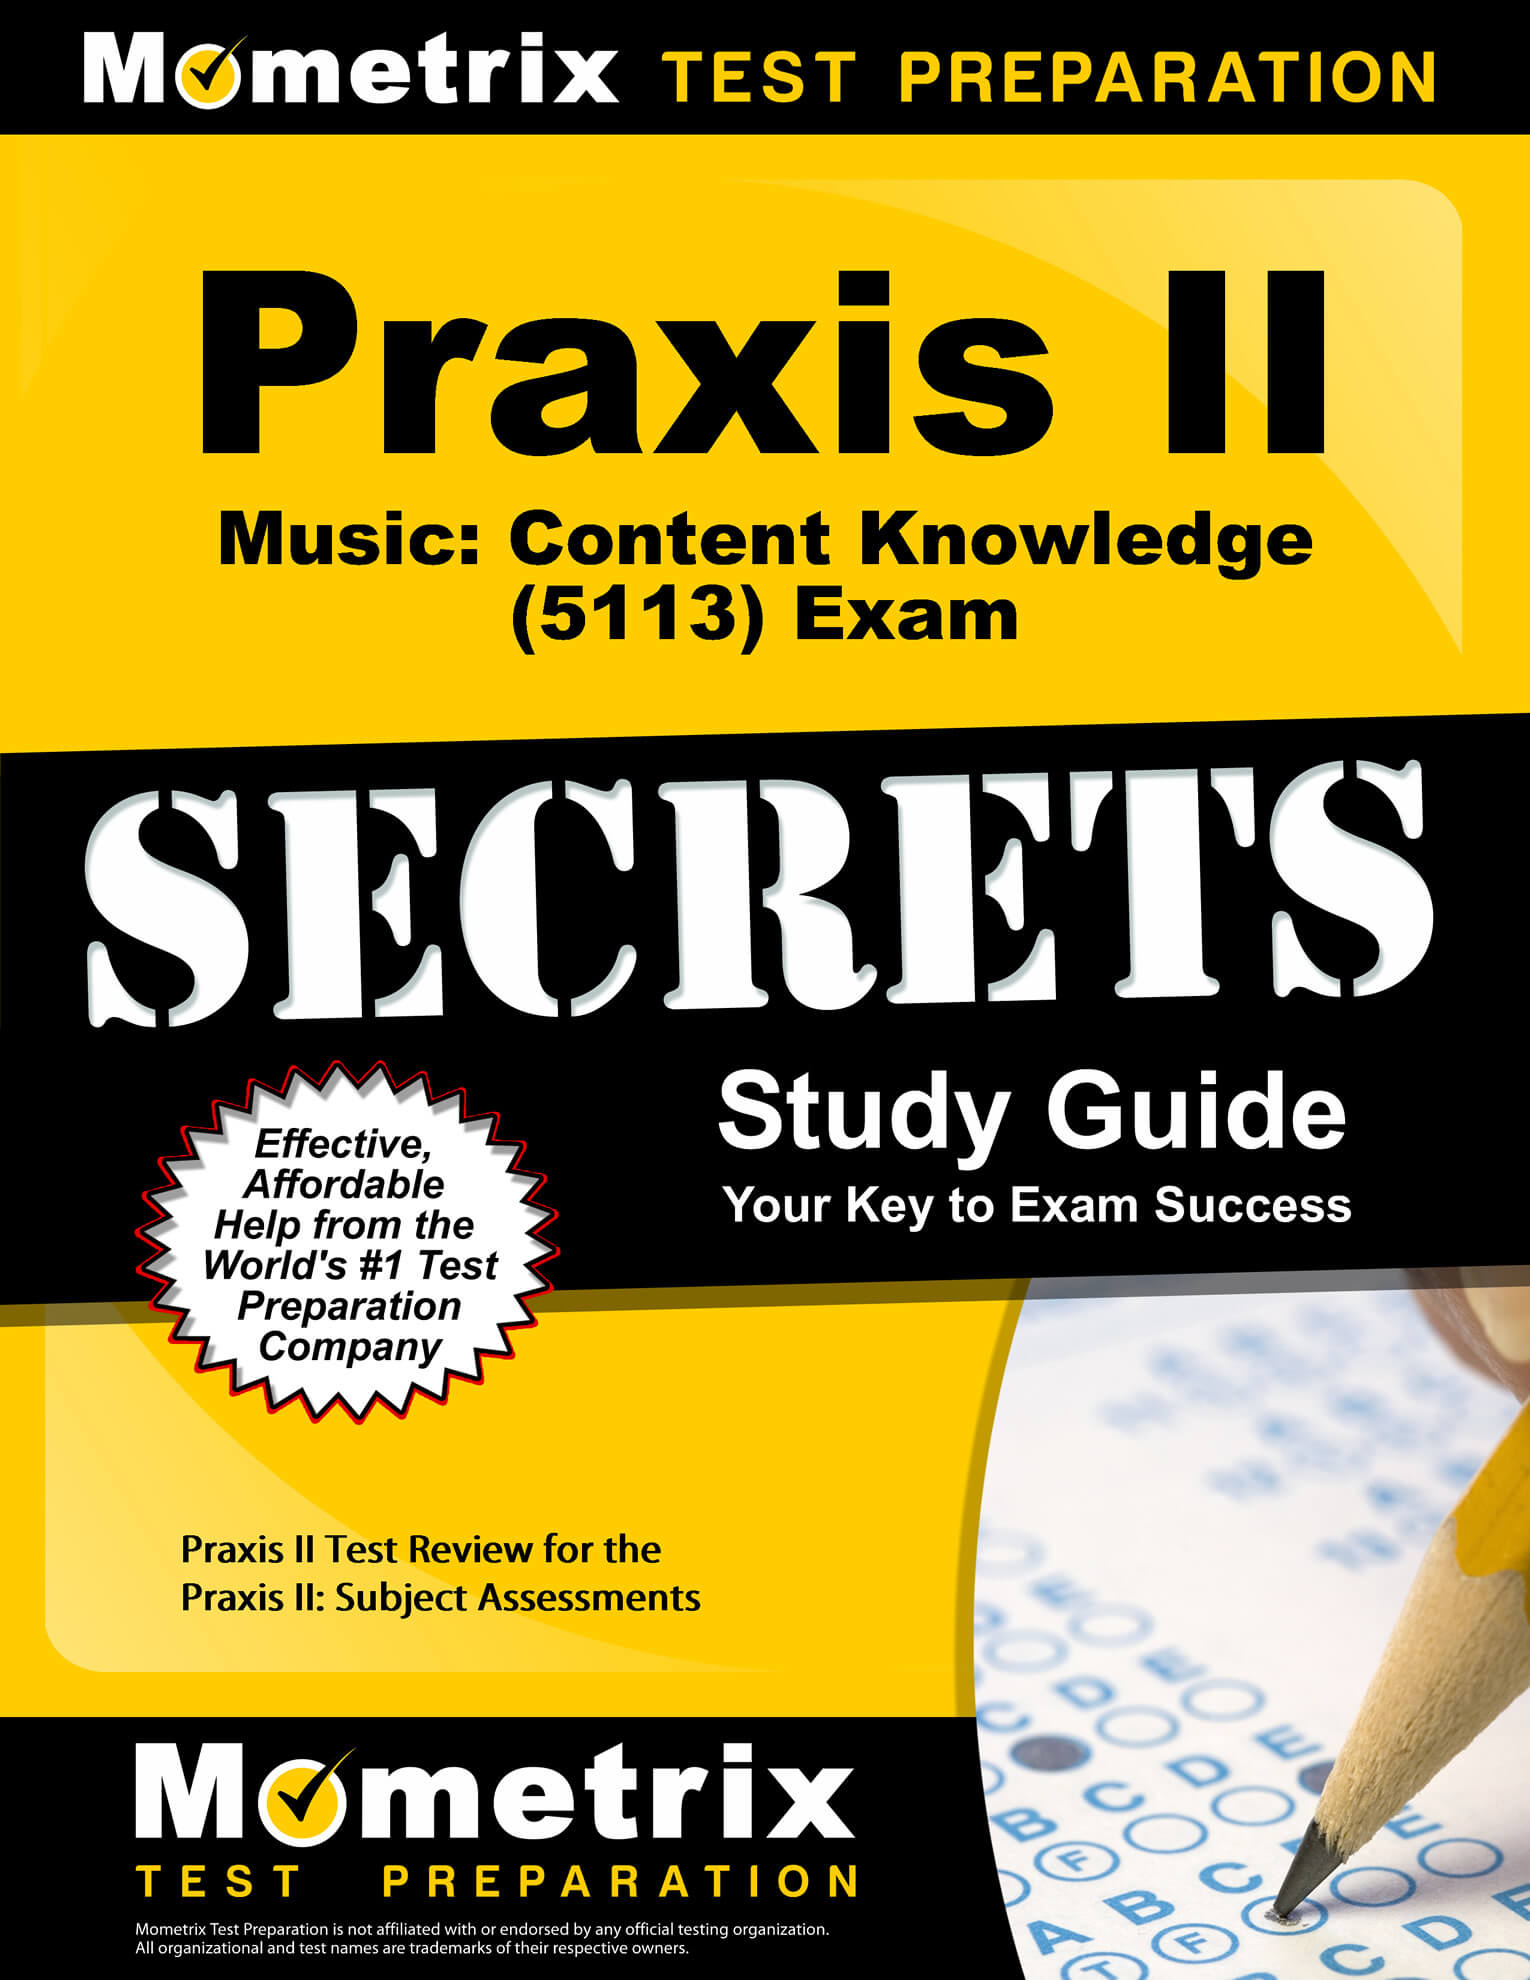 Praxis II Music: Content Knowledge Study Guide